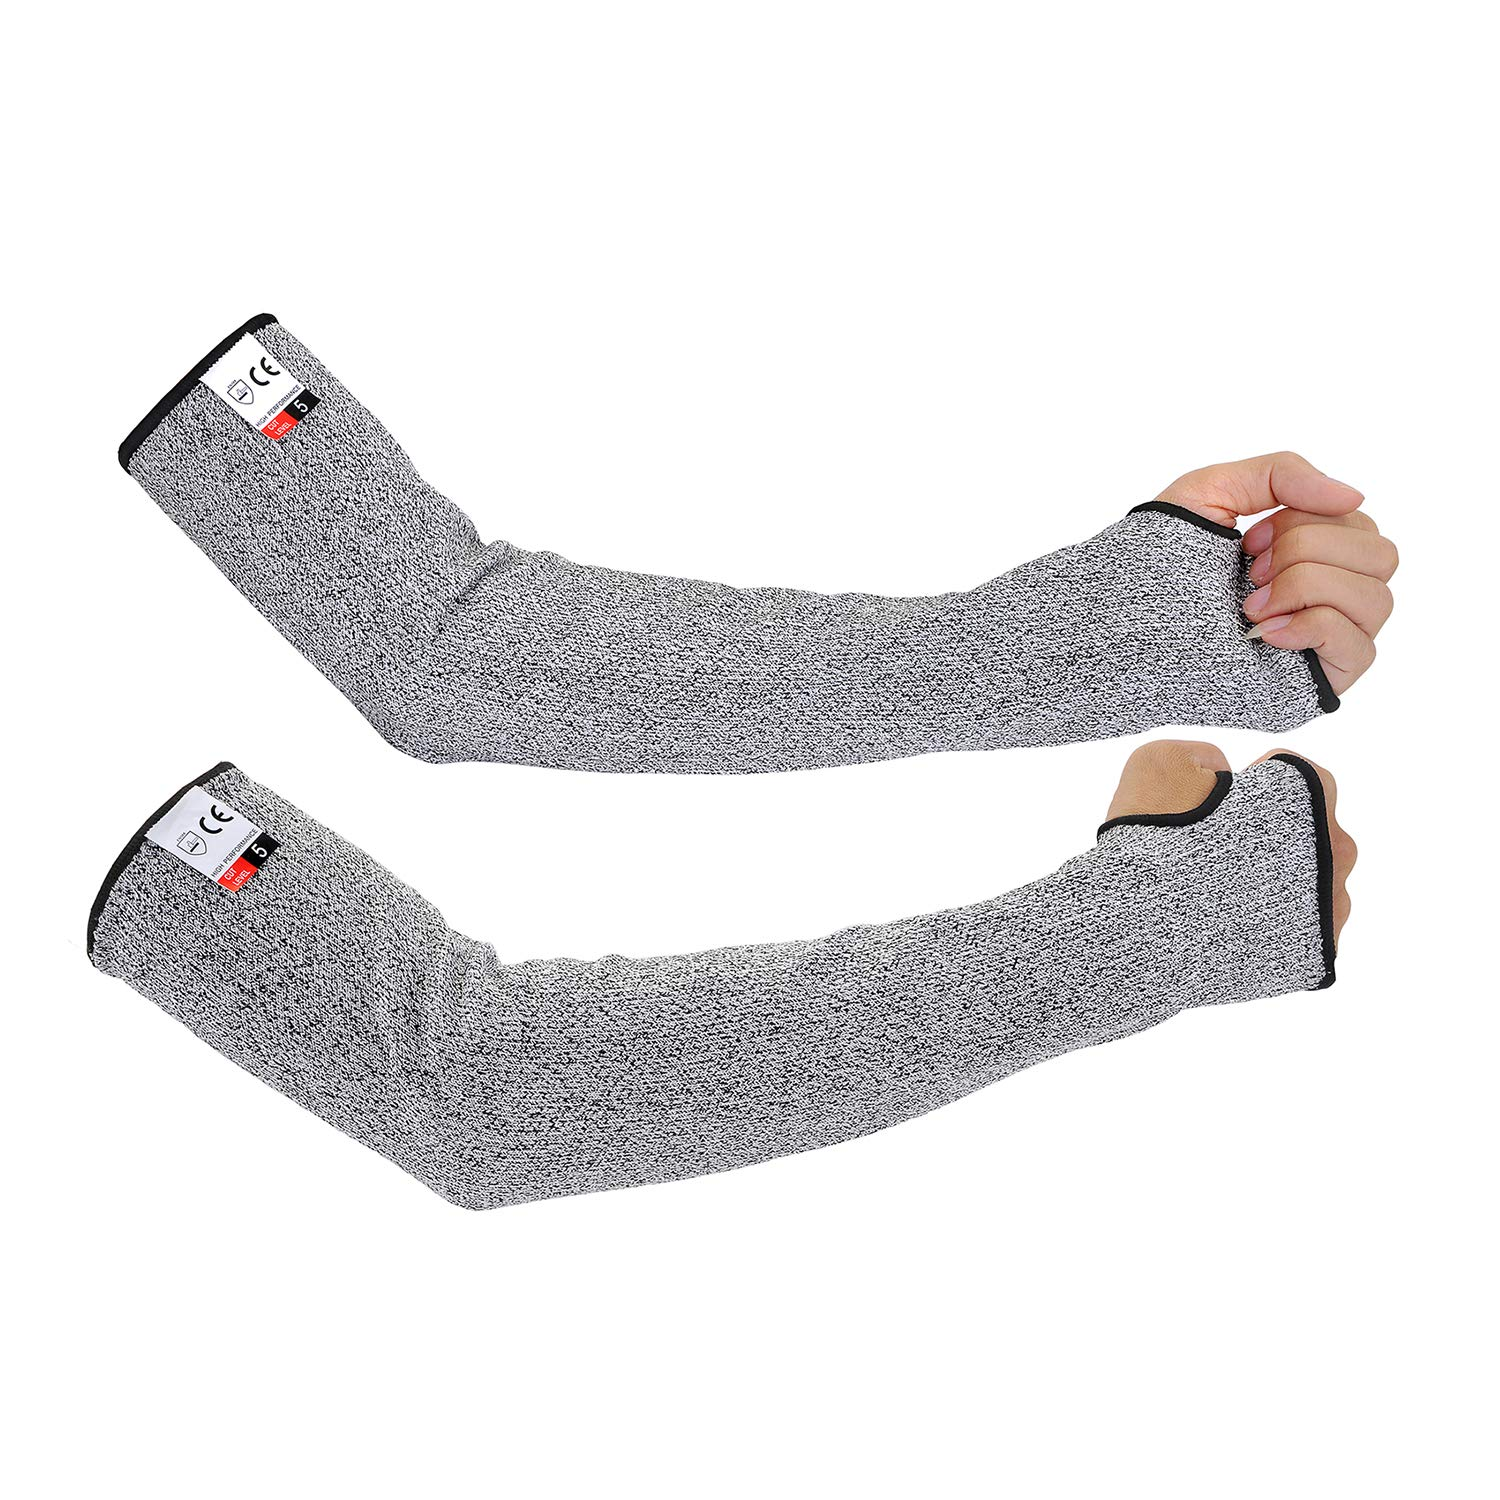 Anti Cut Resistant Arm Sleeves with Thumb Hole, Safety Protective Sleeves Abrasion Resistant with Level 5 Protection 18 inch Long and 5 inch Width Idea for Gardening Glass Handling(1 Pairs one Pack)